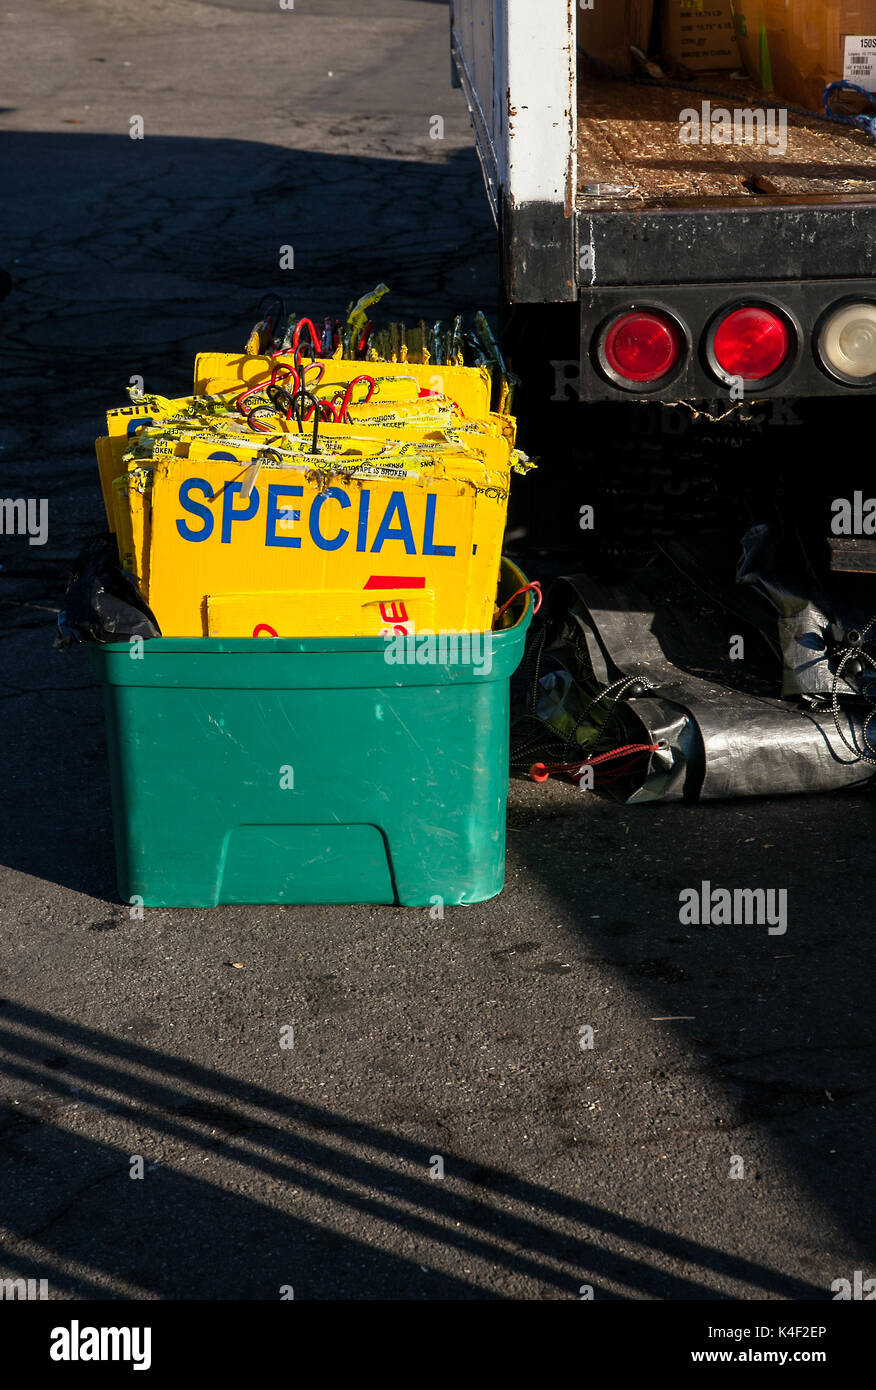 Vendor is unloading his truck hoping for a successful day at the swap meet.  He has a bucket of bright yellow signs ready to attract some customers - Stock Image